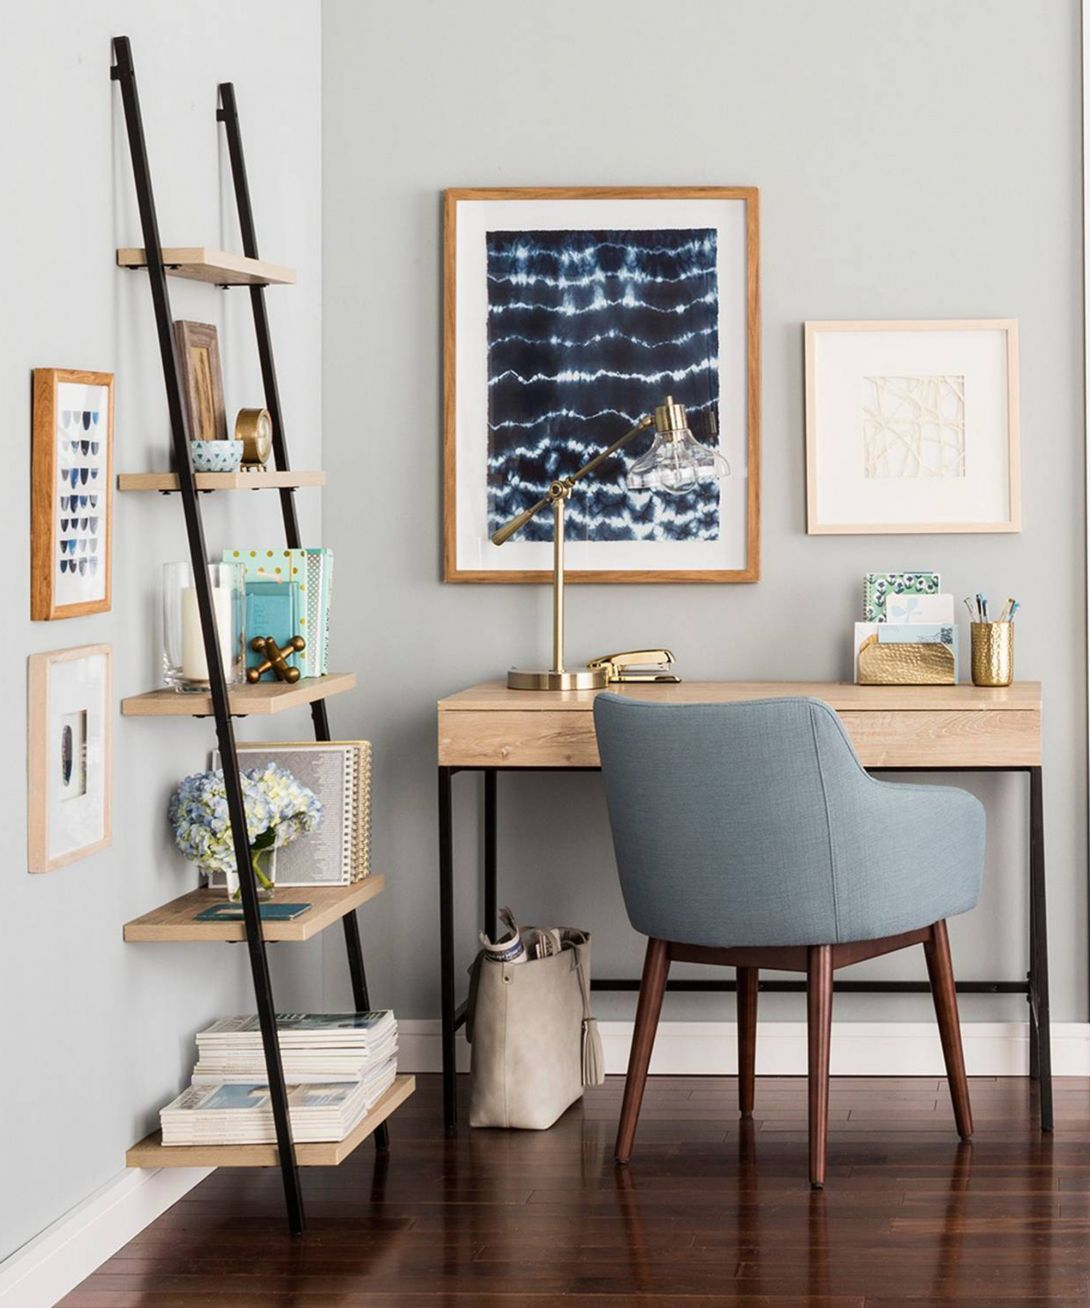 Target's New Home Line Looks SO Much More Expensive Than